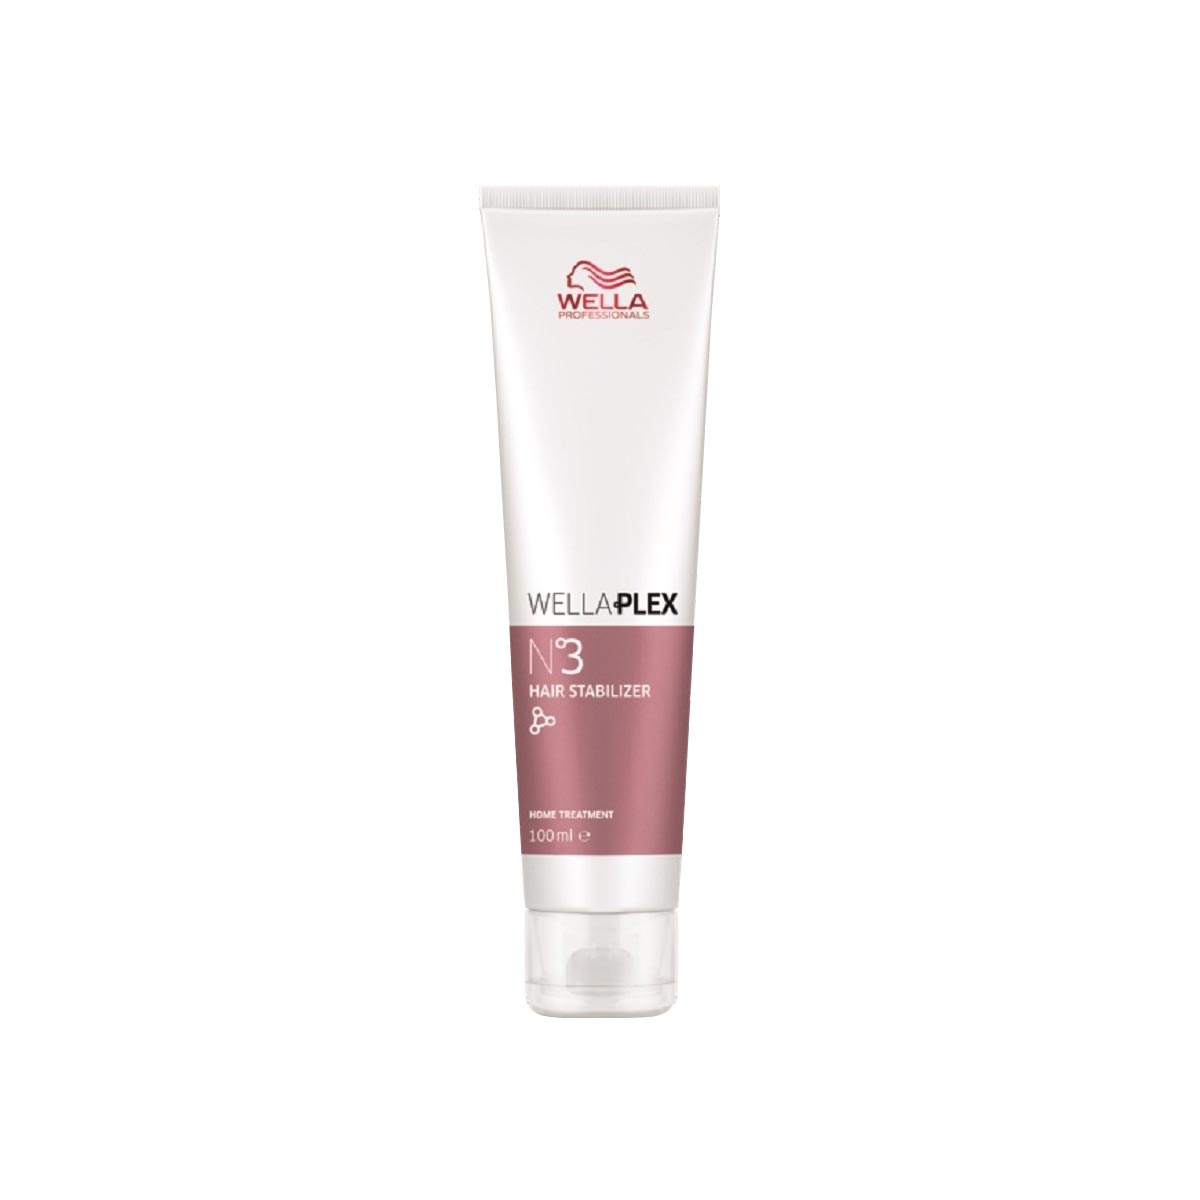 Hair Stabilizer N°3 WellaPlex Wella 100ml